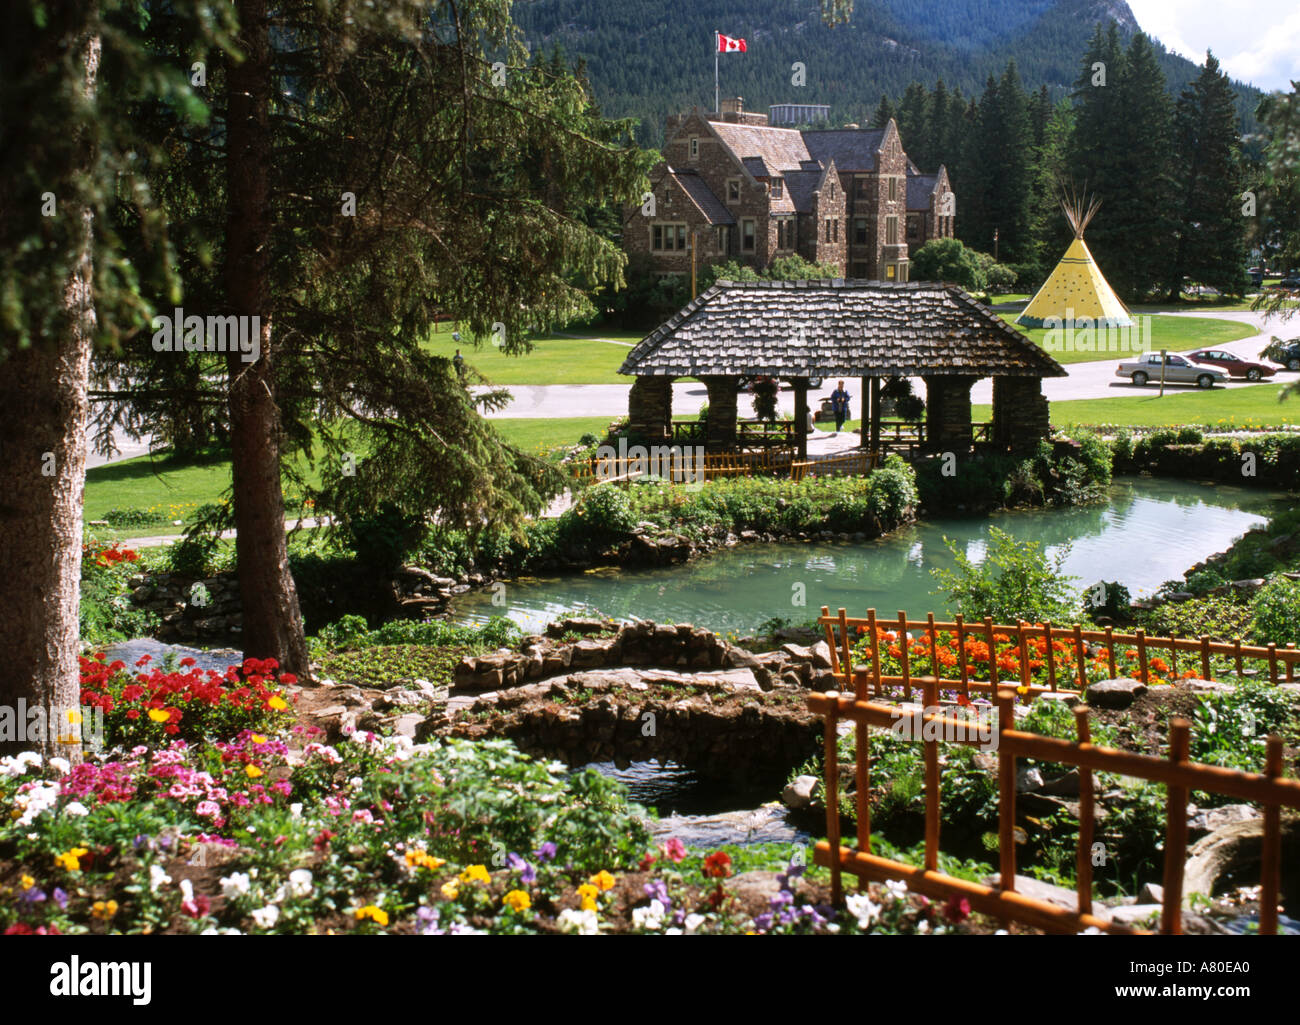 Canada Banff Cascade Gardens Stock Photo: 528032 - Alamy